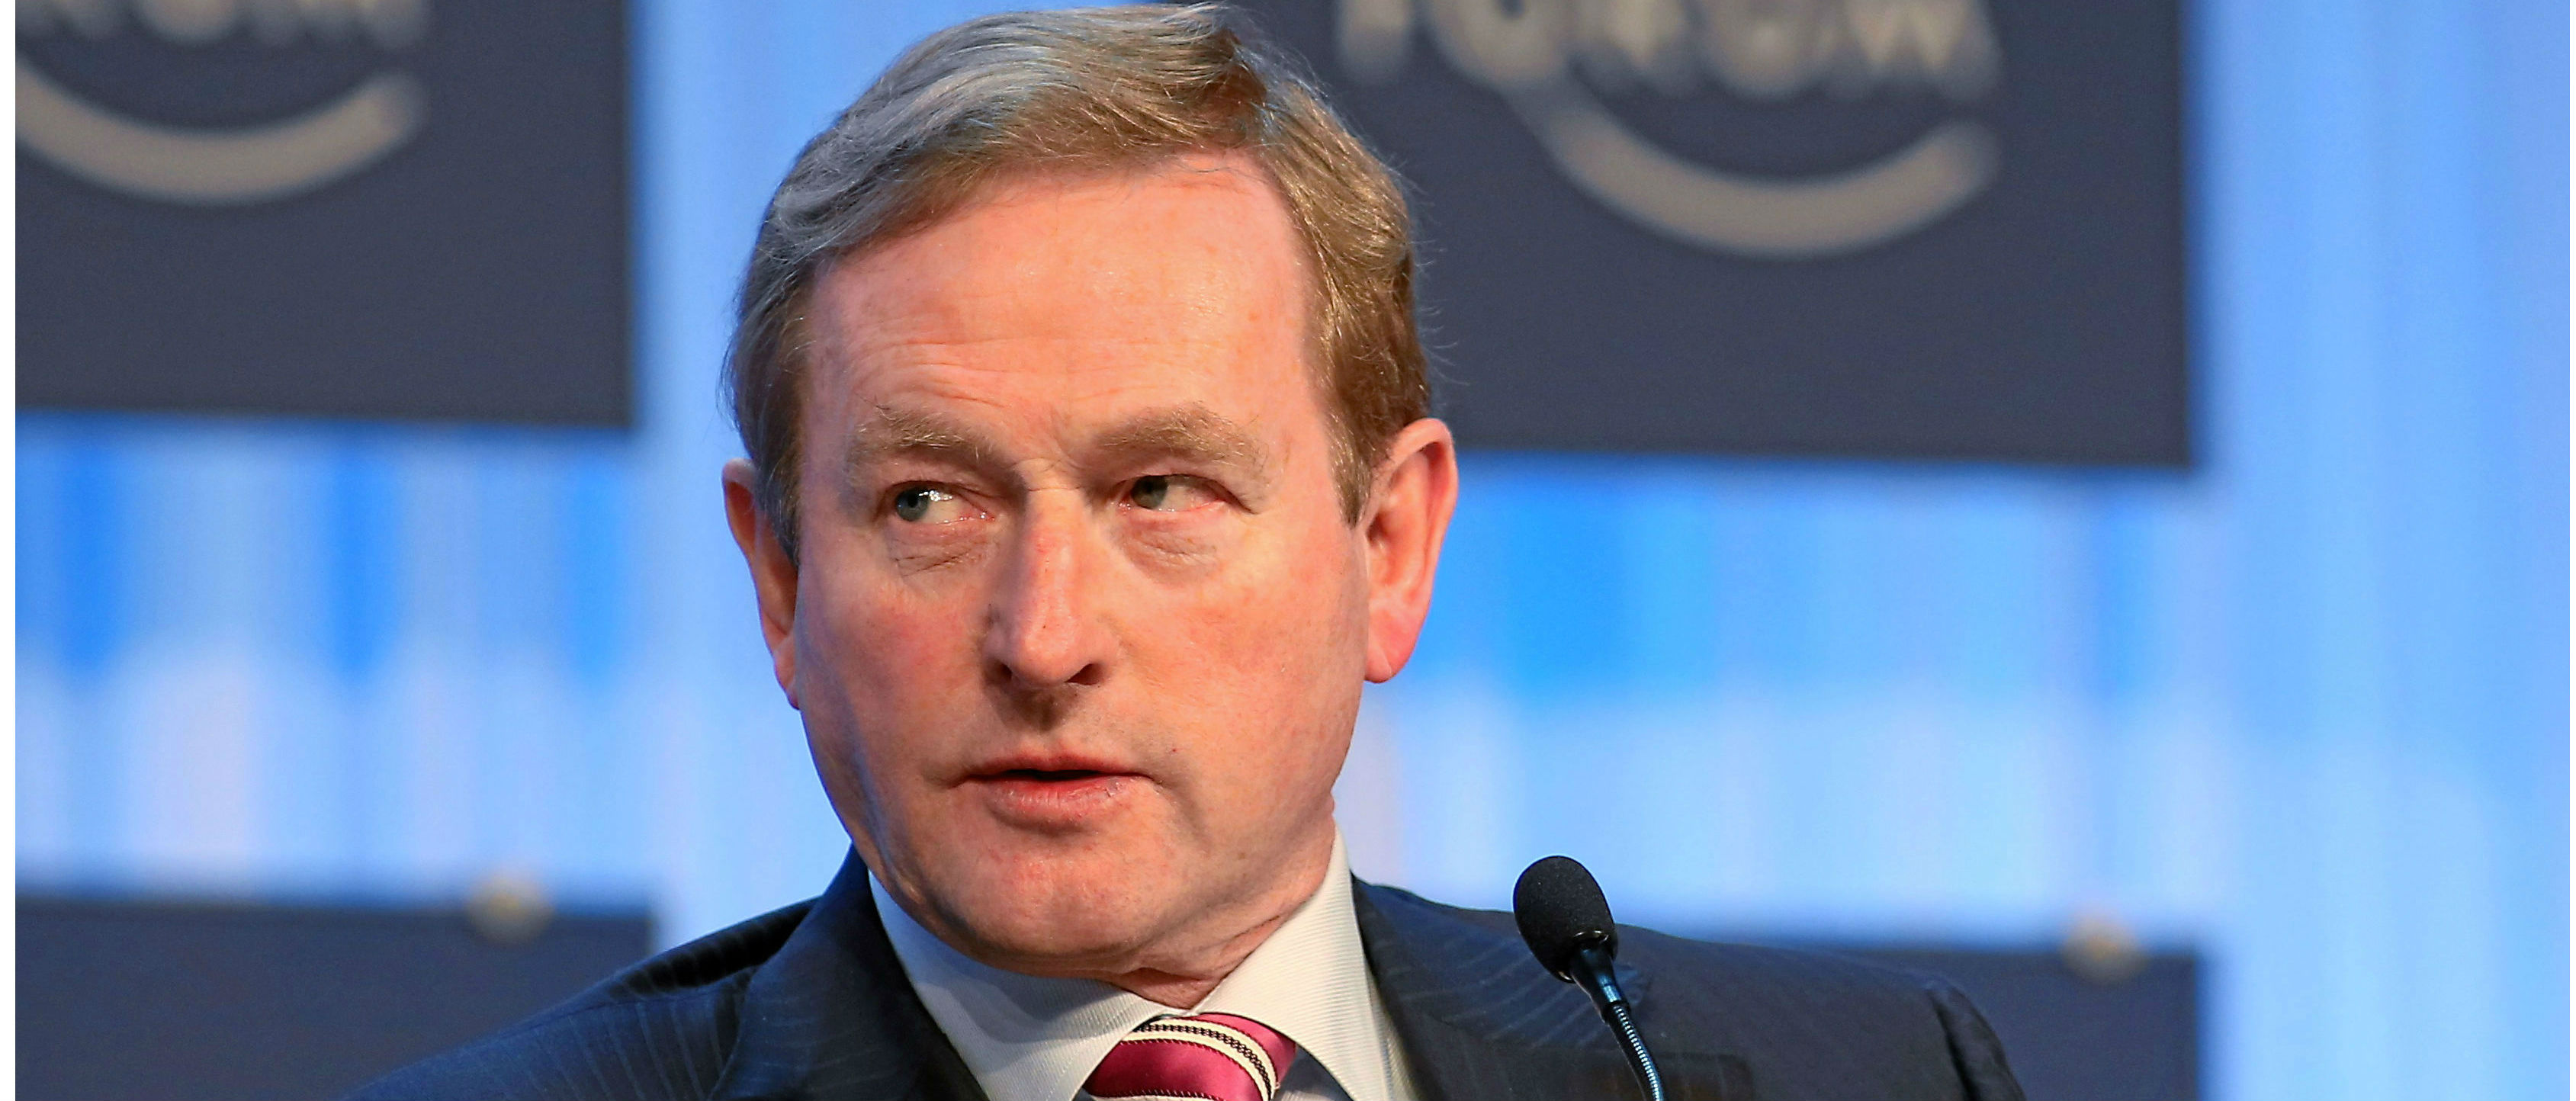 Enda Kenny Stays Tight-Lipped On Leadership